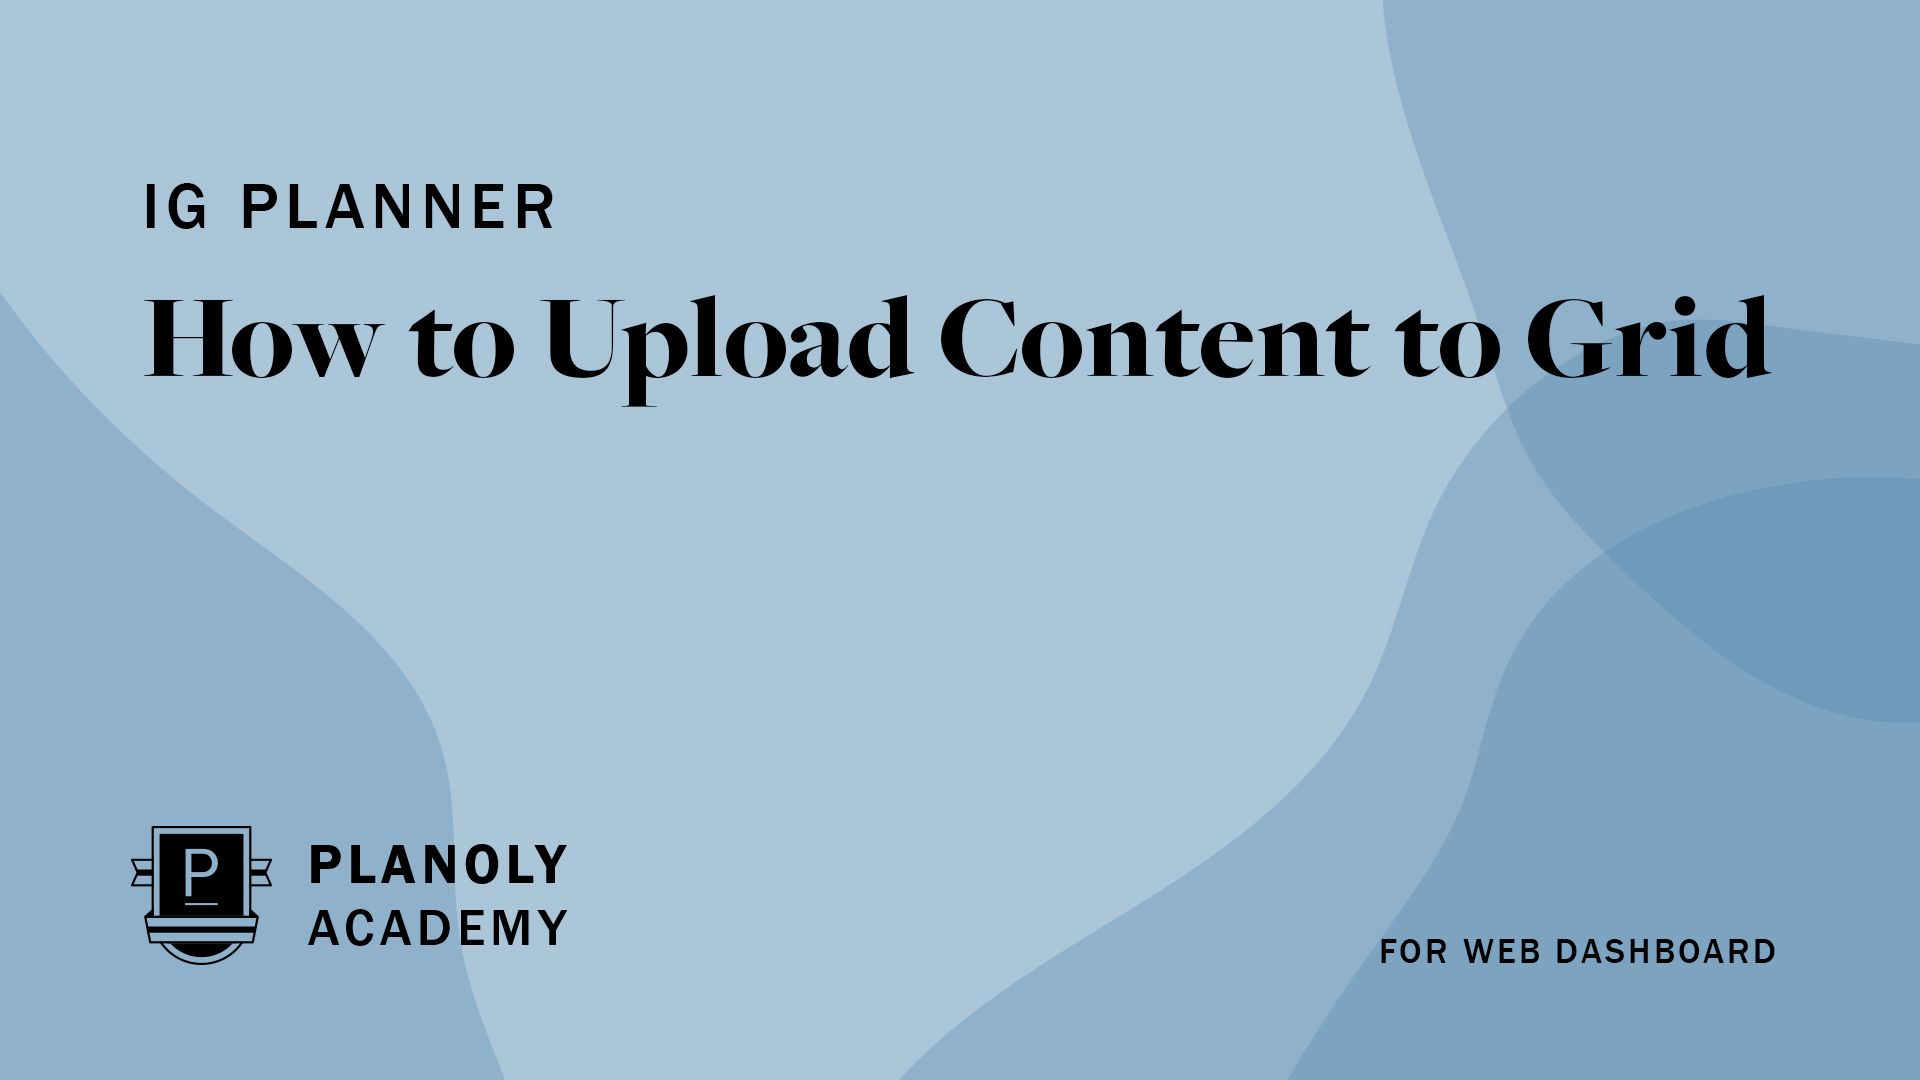 How to Upload Content to Grid